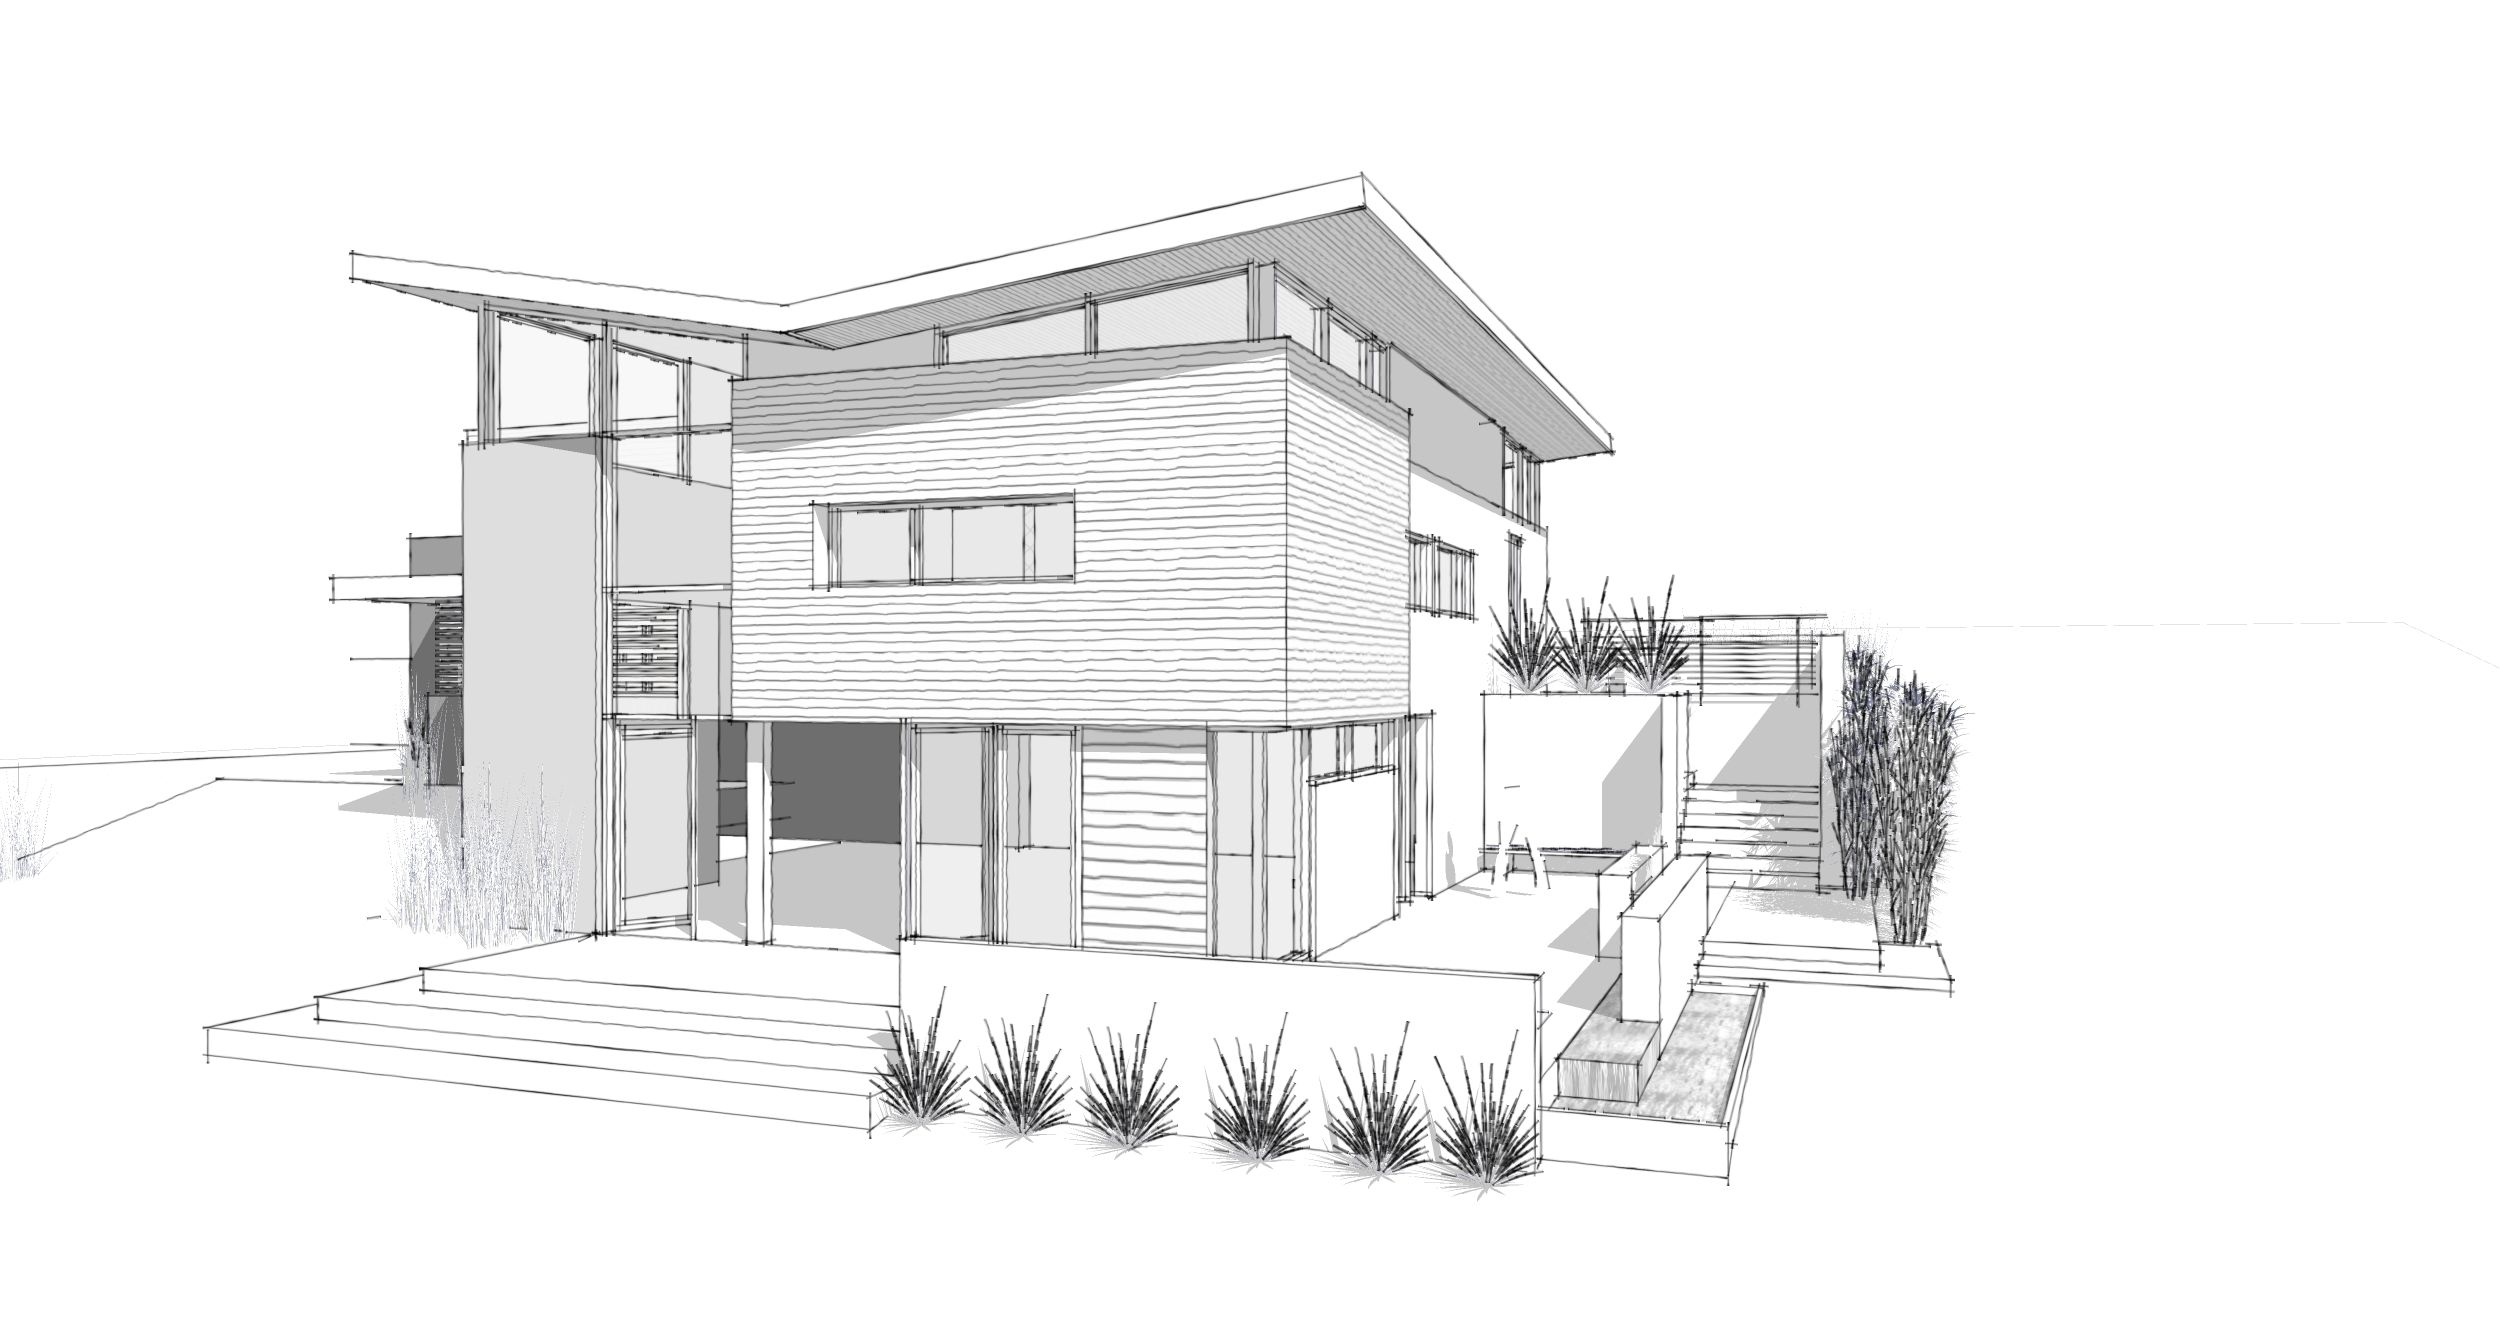 Modern home architecture sketches design ideas 13435 for How to draw your own house plans